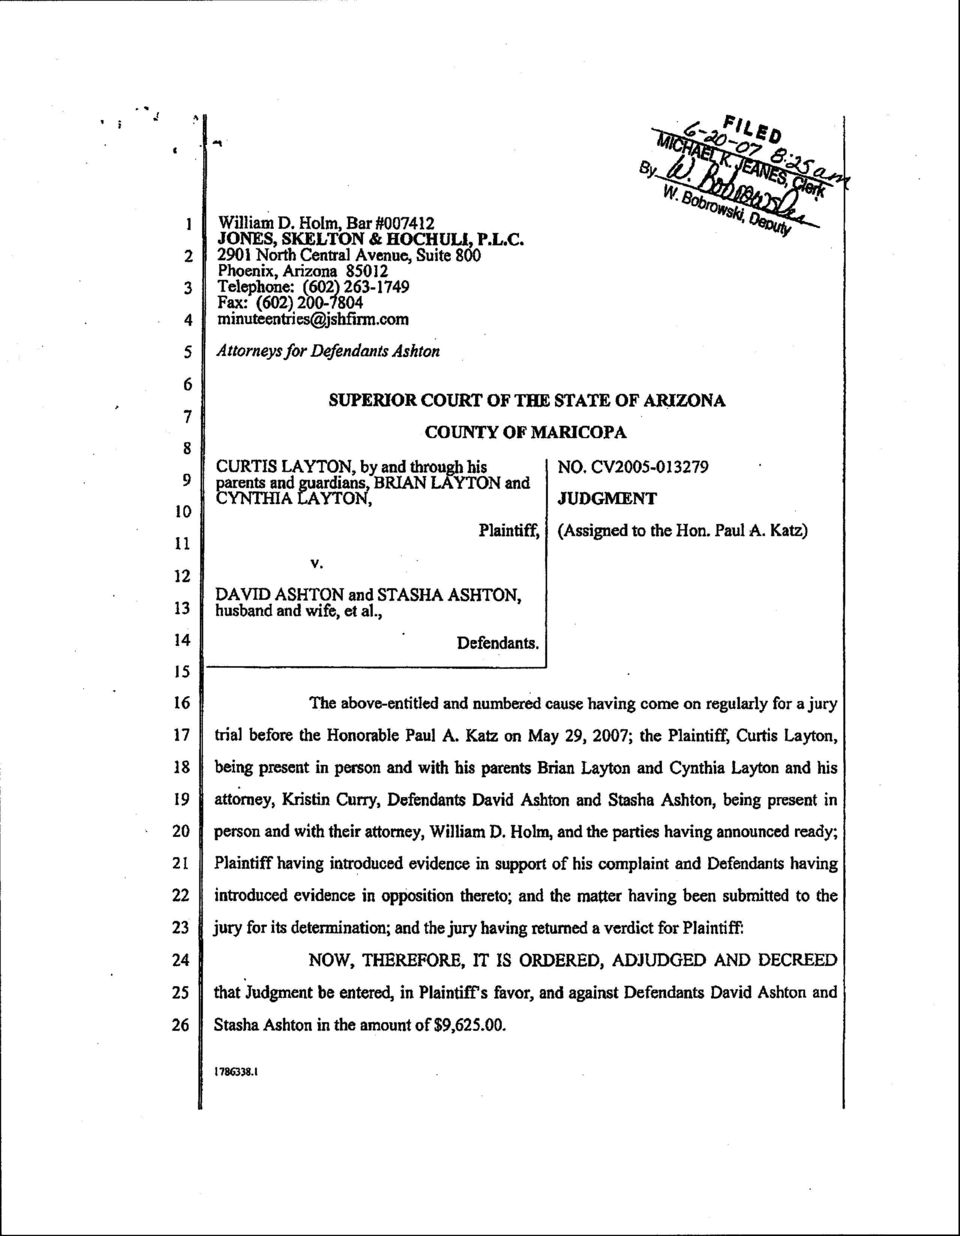 CV005-079 parents and ardians, BRIAN YTON and CYNTHIA J%YTON, JUDGMENT V. Plaintiff, DAVID ASHTON and STASHA ASHTON, husband and wife, et al., Defendants. (Assigned to the Hon. Paul A.